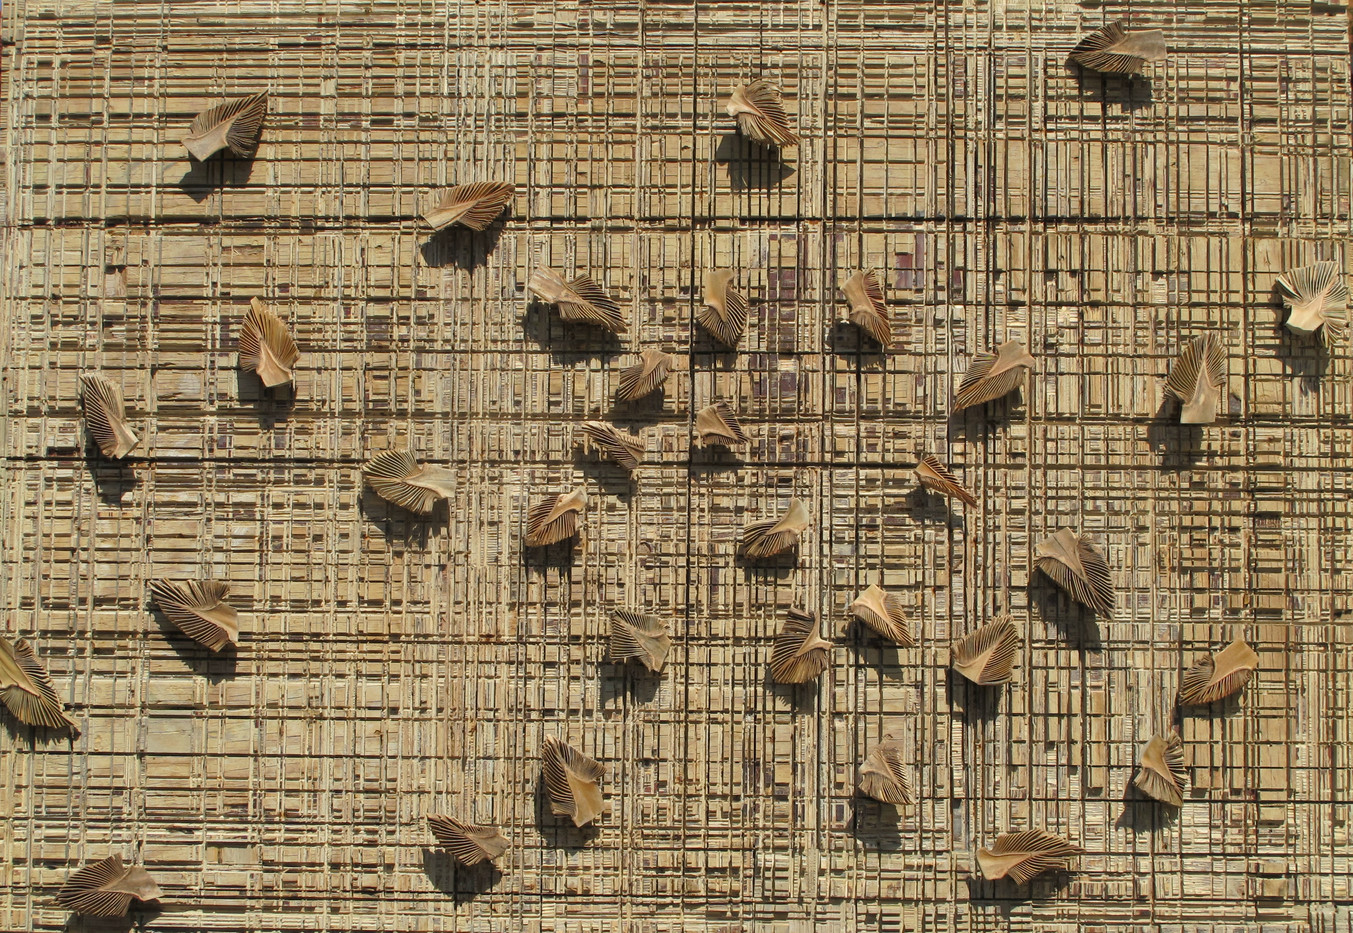 Willem Boshoff | Inklings | 2013 | Wooden Cutting Block and Palm (Washingtonia robusta) Cuttings | 122.5 x 165.5 cm